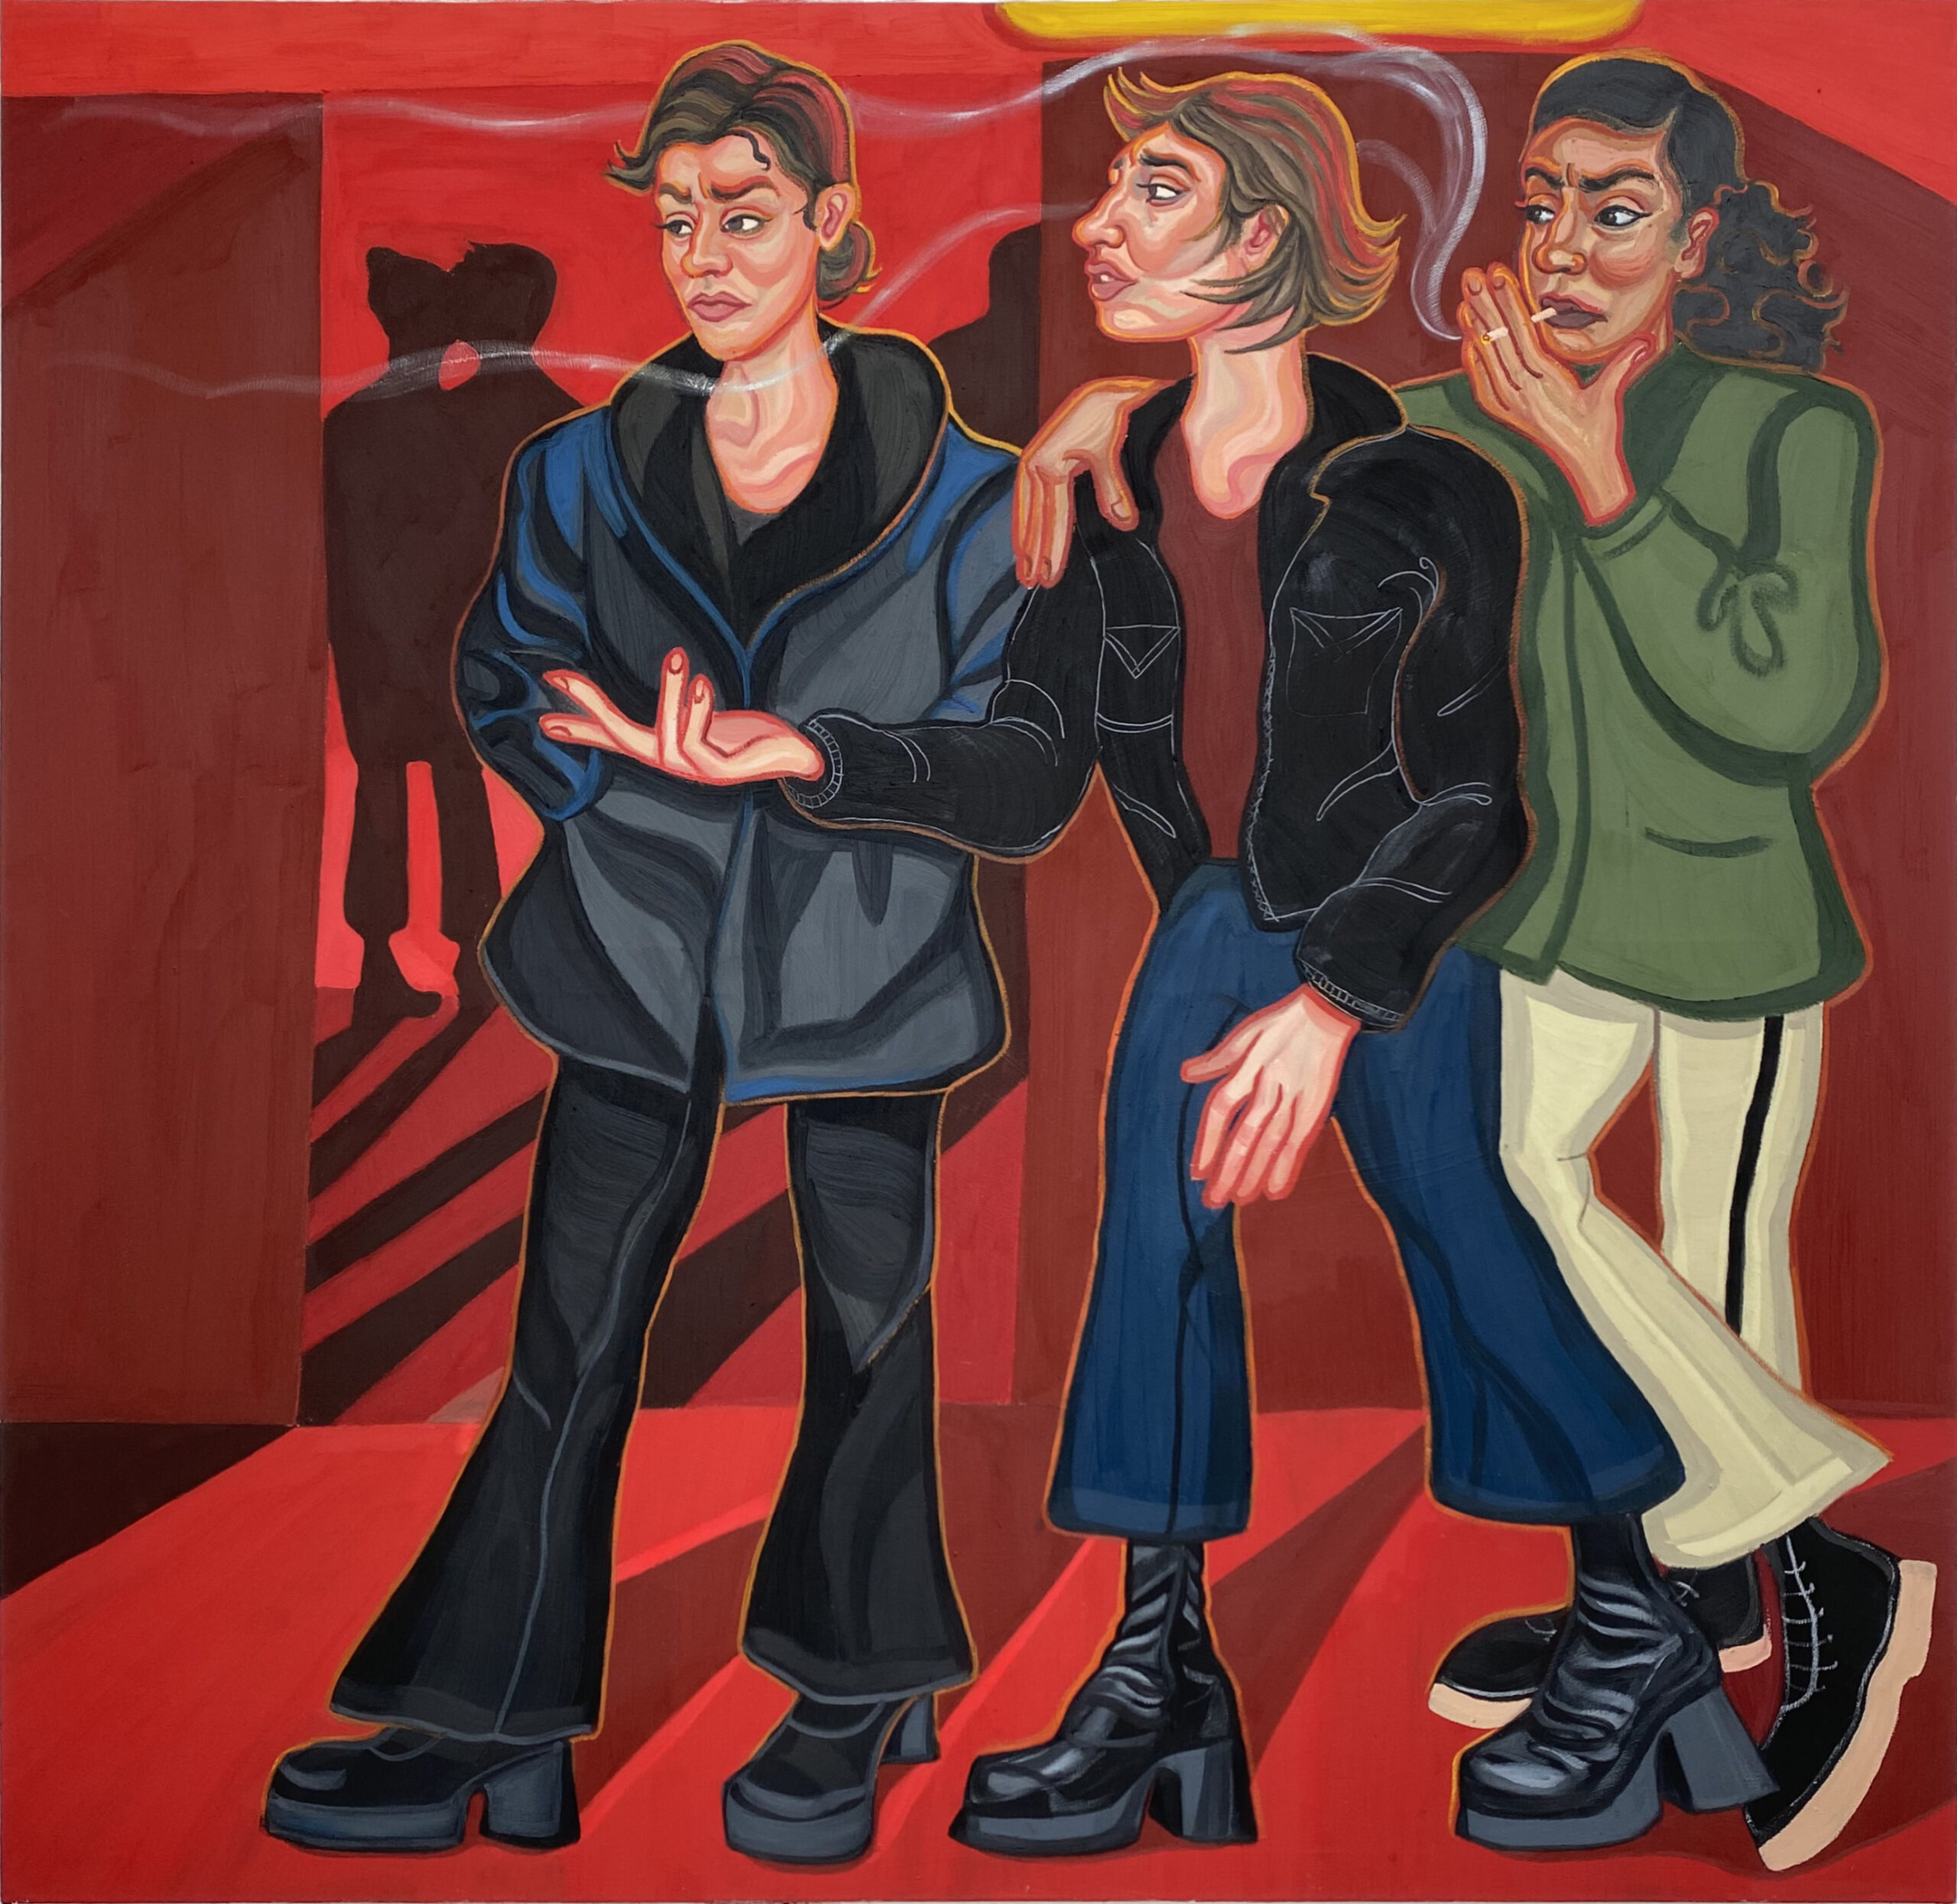 Ania Hobson, 2021, Outside Bar, oil:impasto on canvas, 190 x 180 cm_low